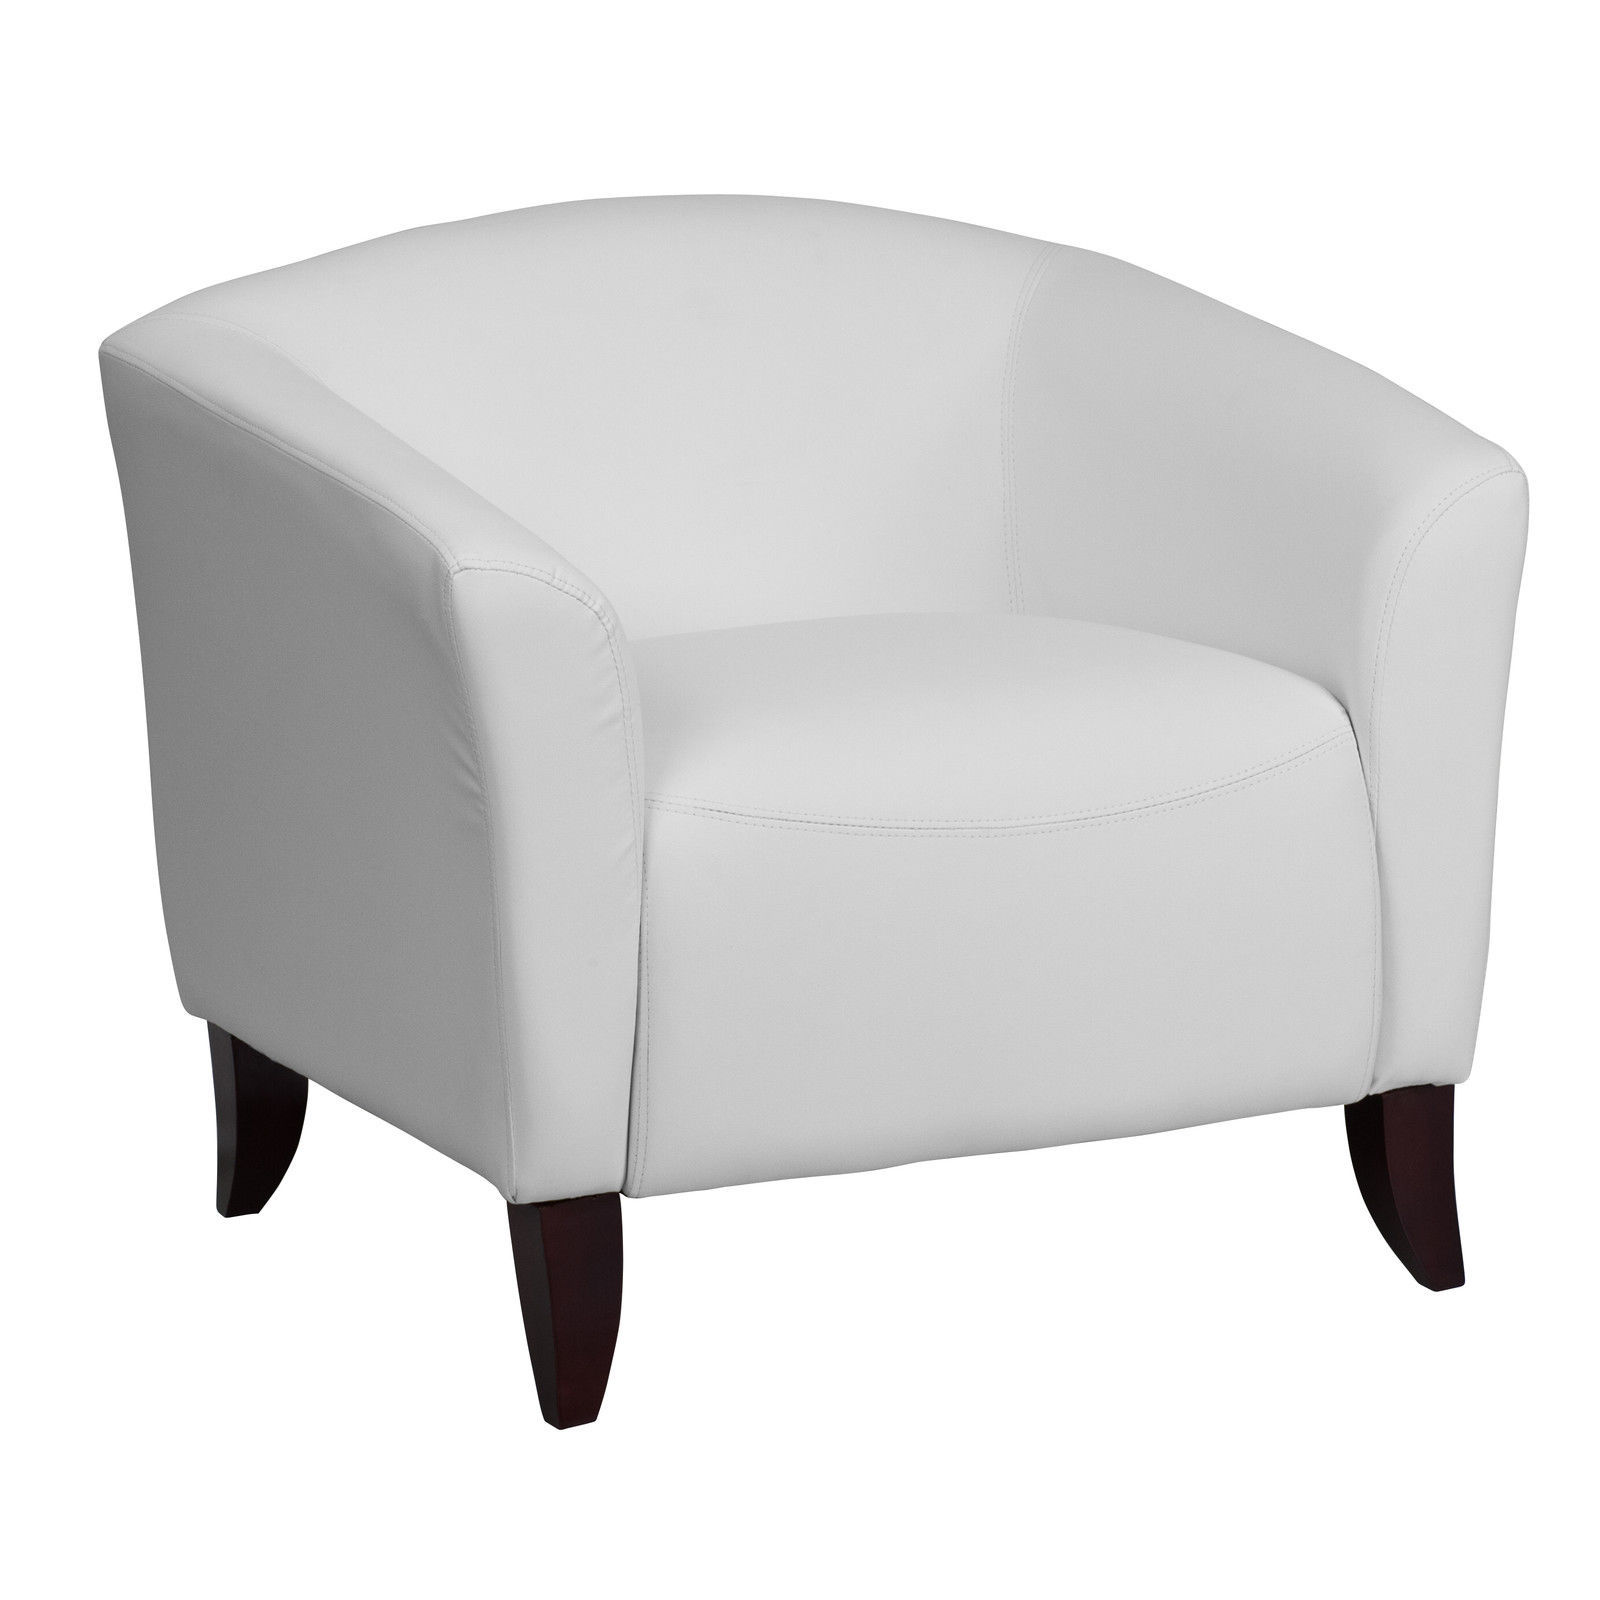 Office furniture imperial white leather chair 111 1 wh gg chairs